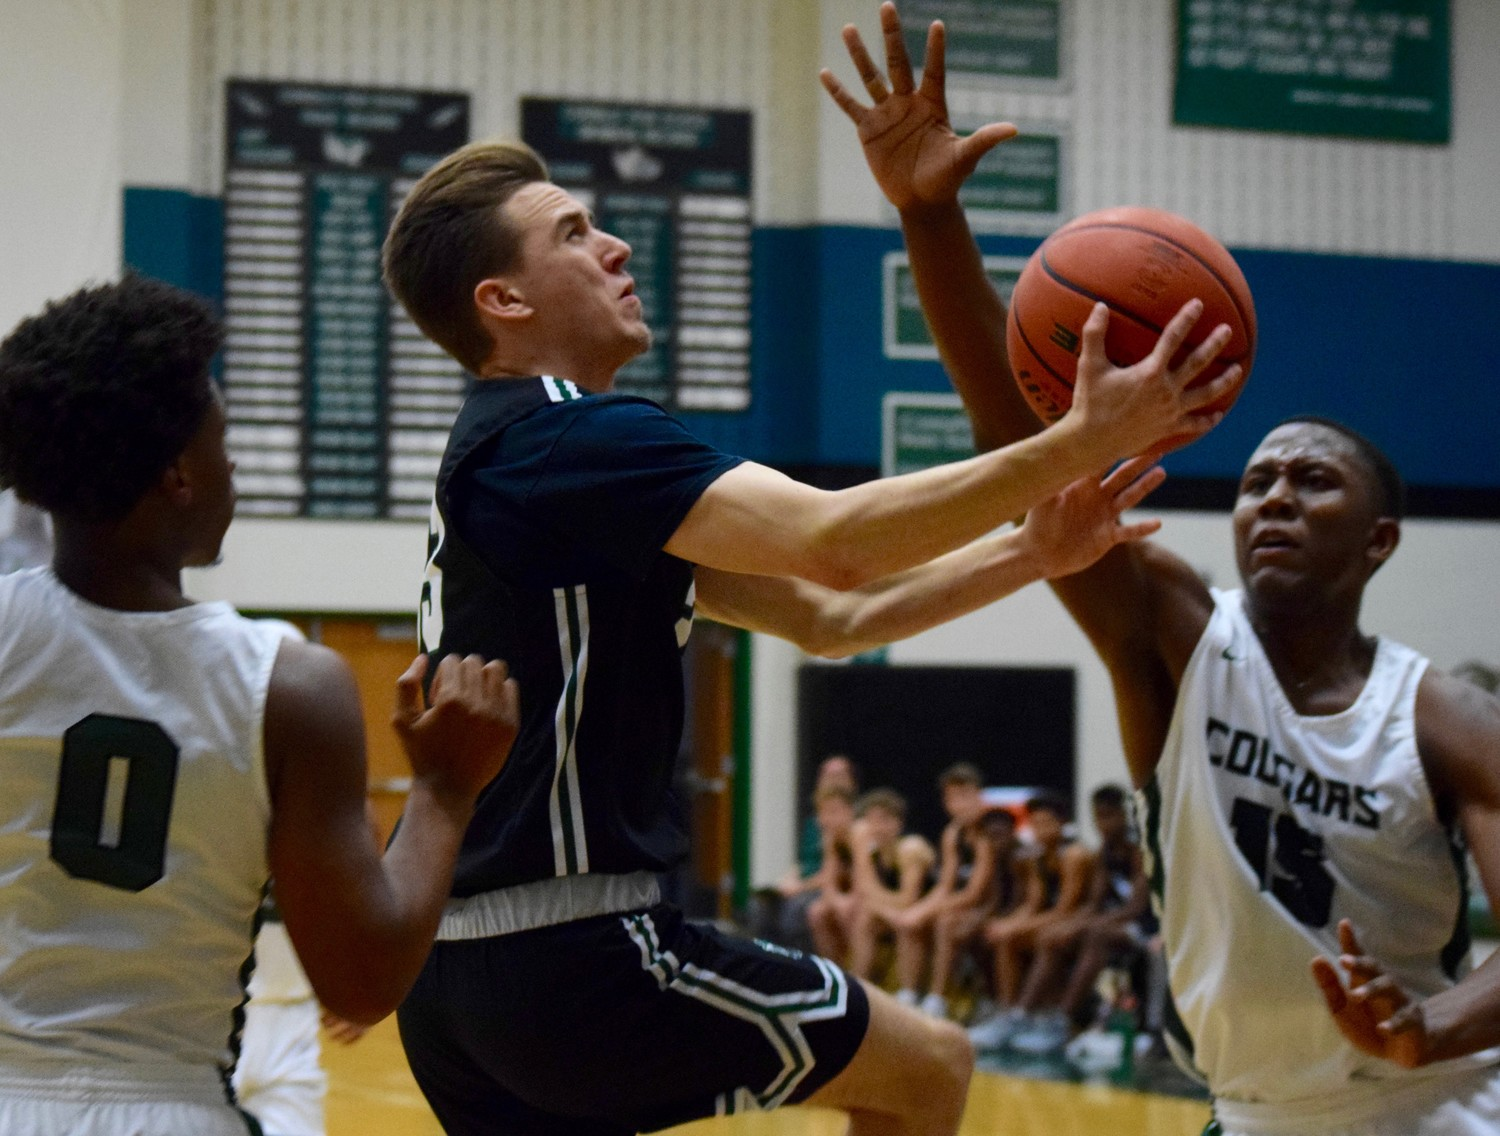 Dillon Faulkner scored three points and Cedar Park beat Connally 60-53 on Friday night to take the top spot in District 17-5A and stay unbeaten in district play.